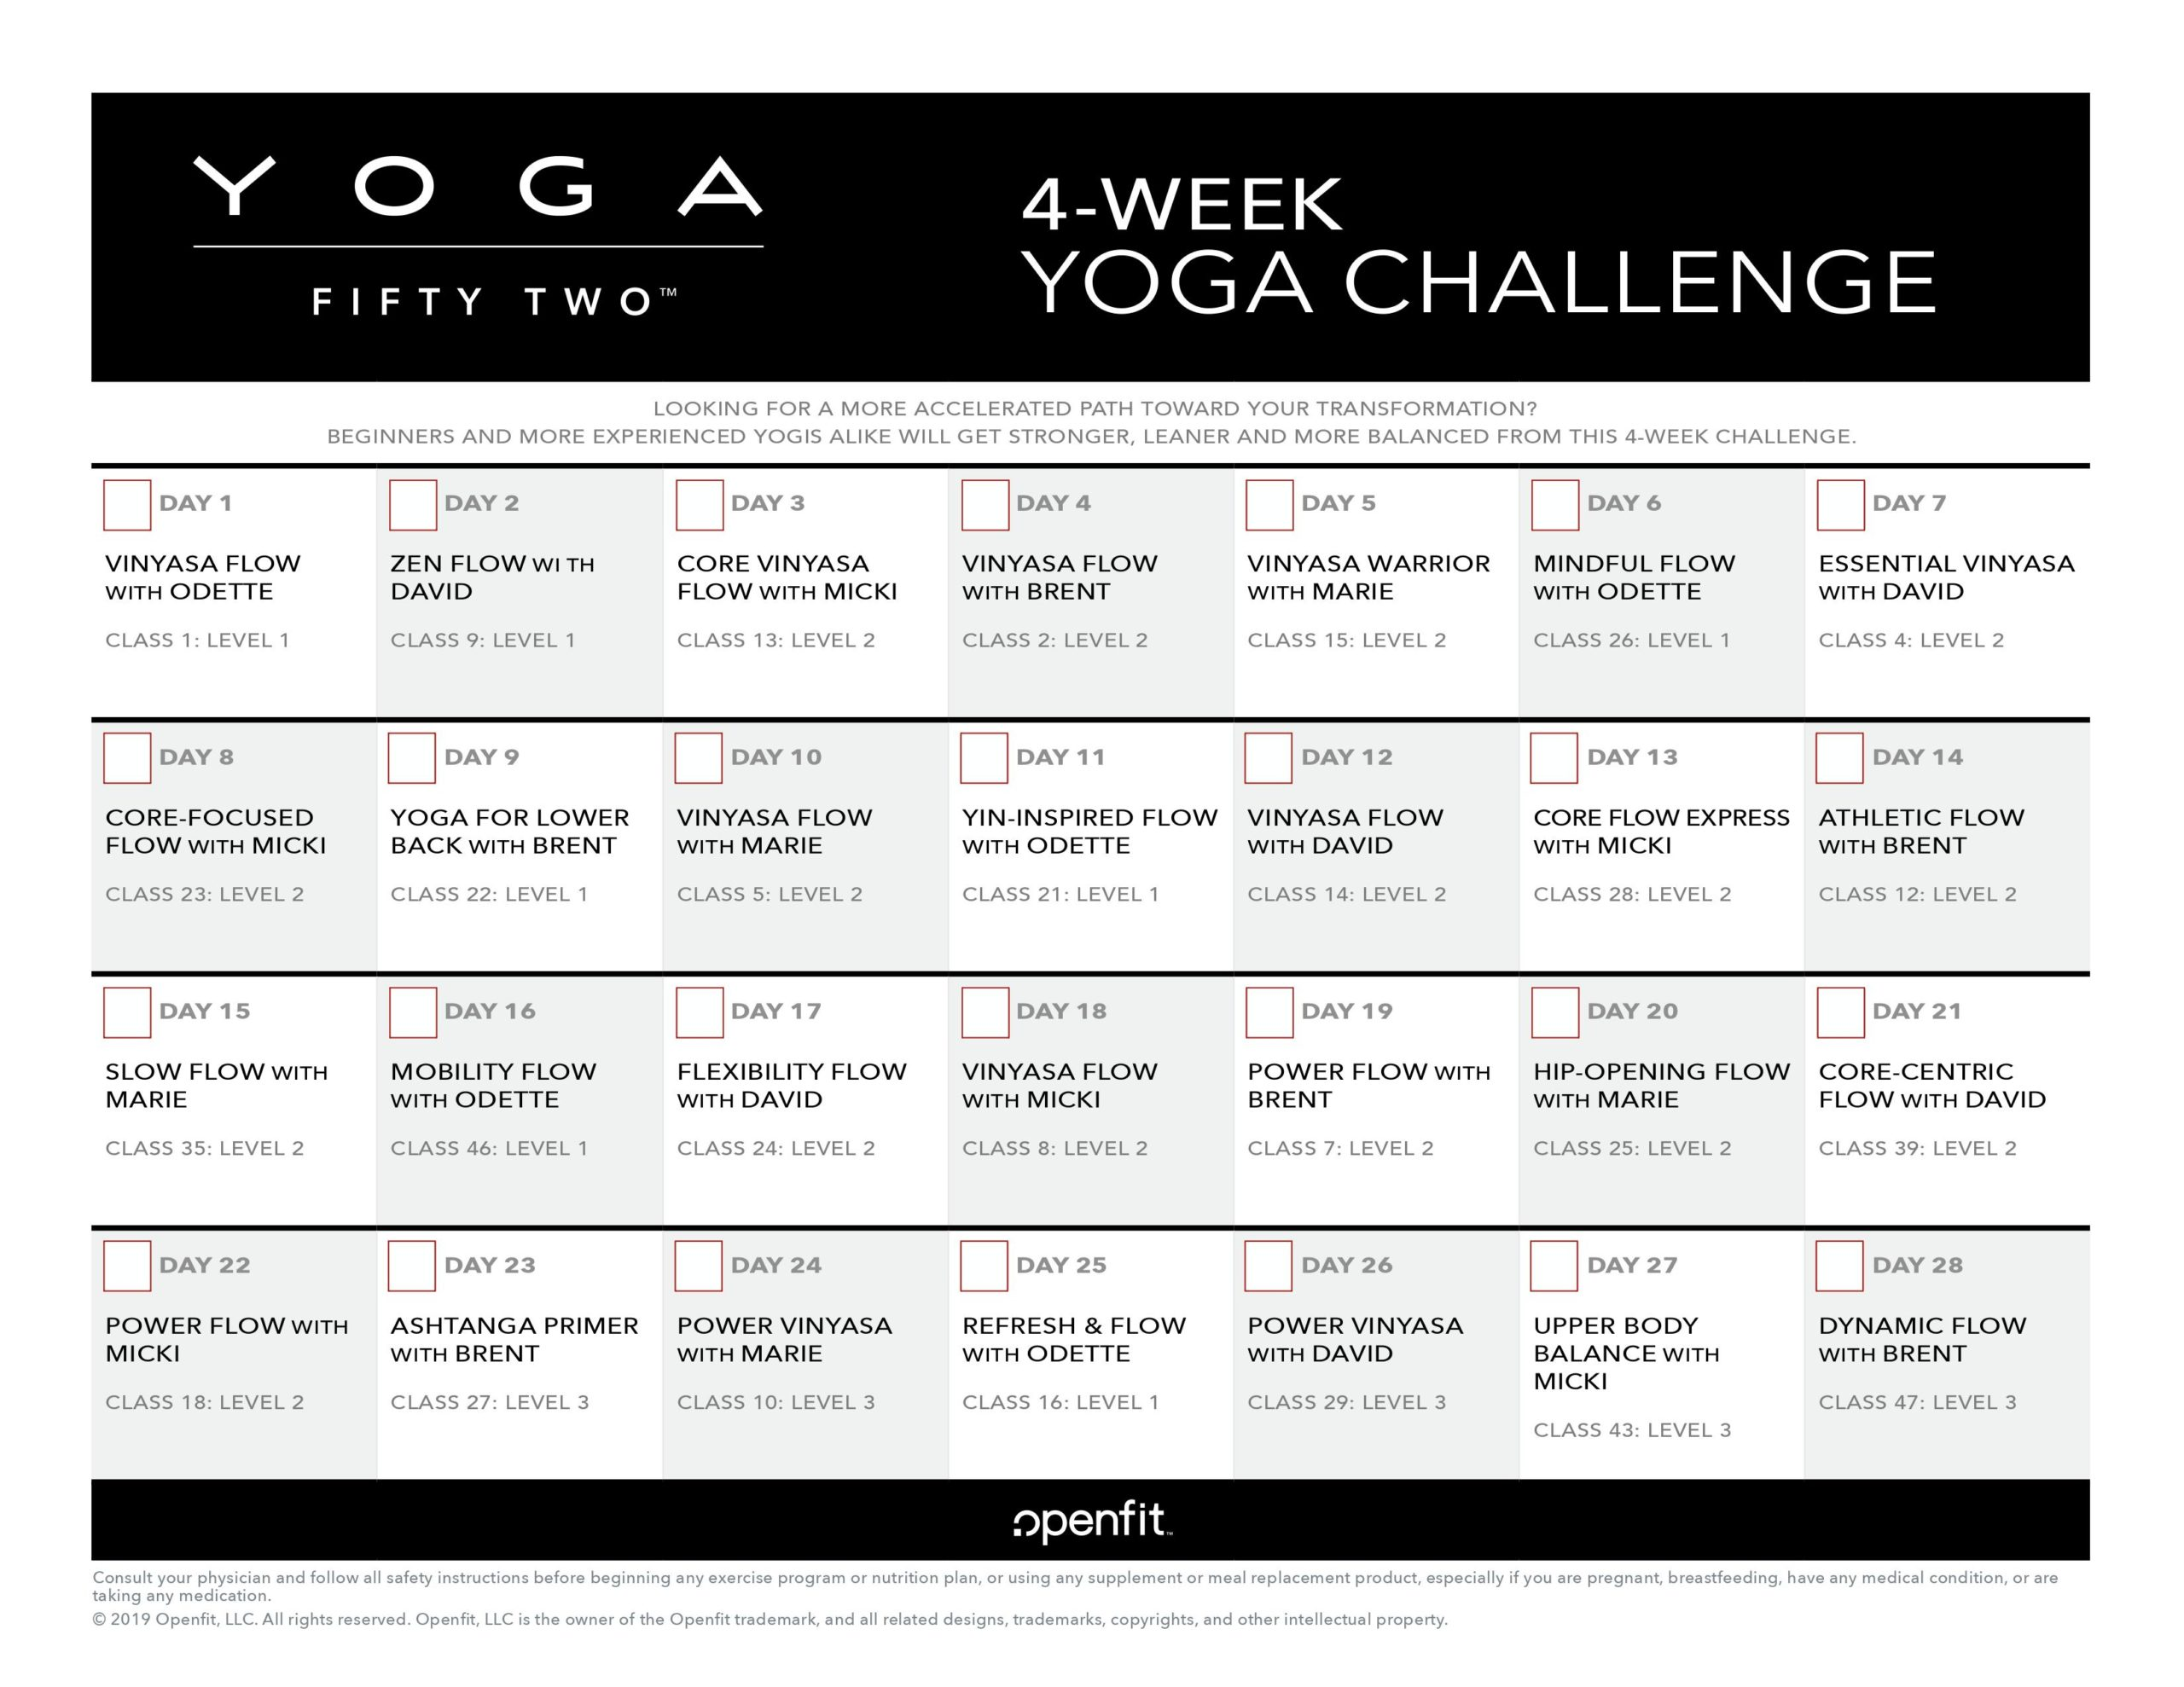 4 week challenge | yoga 52 program calendar